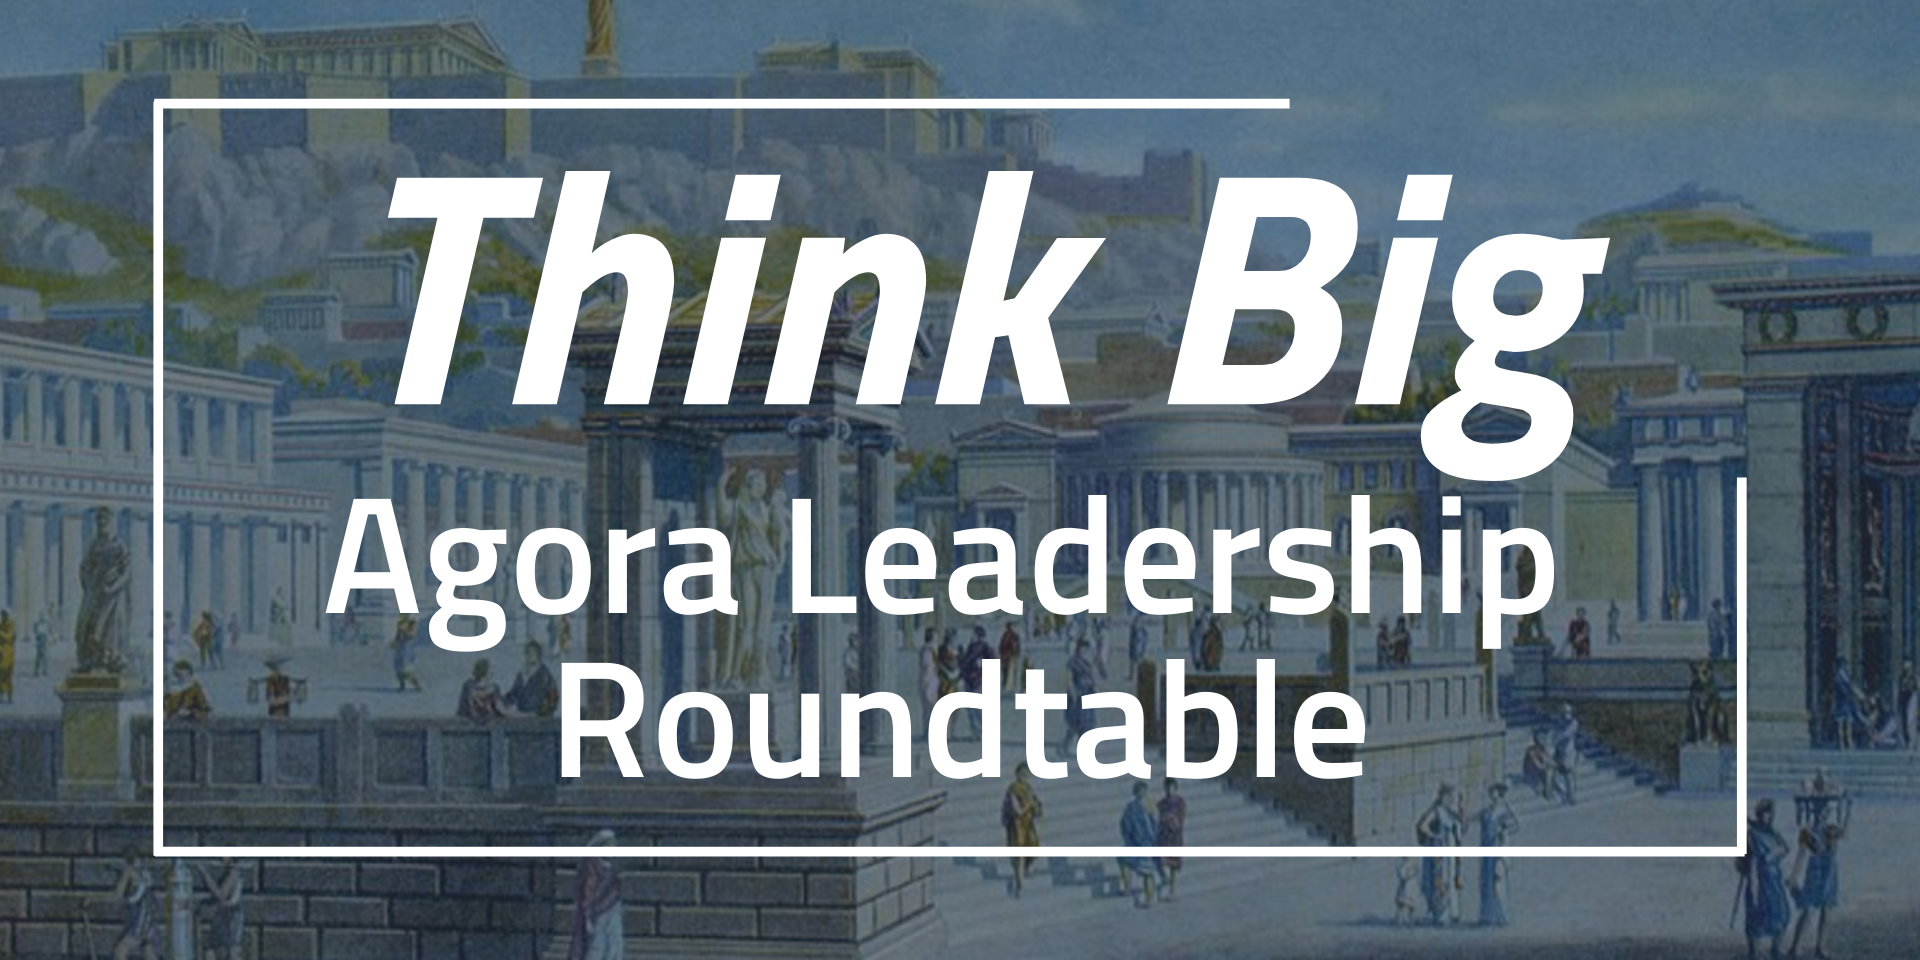 Agora Leadership Roundtable #3